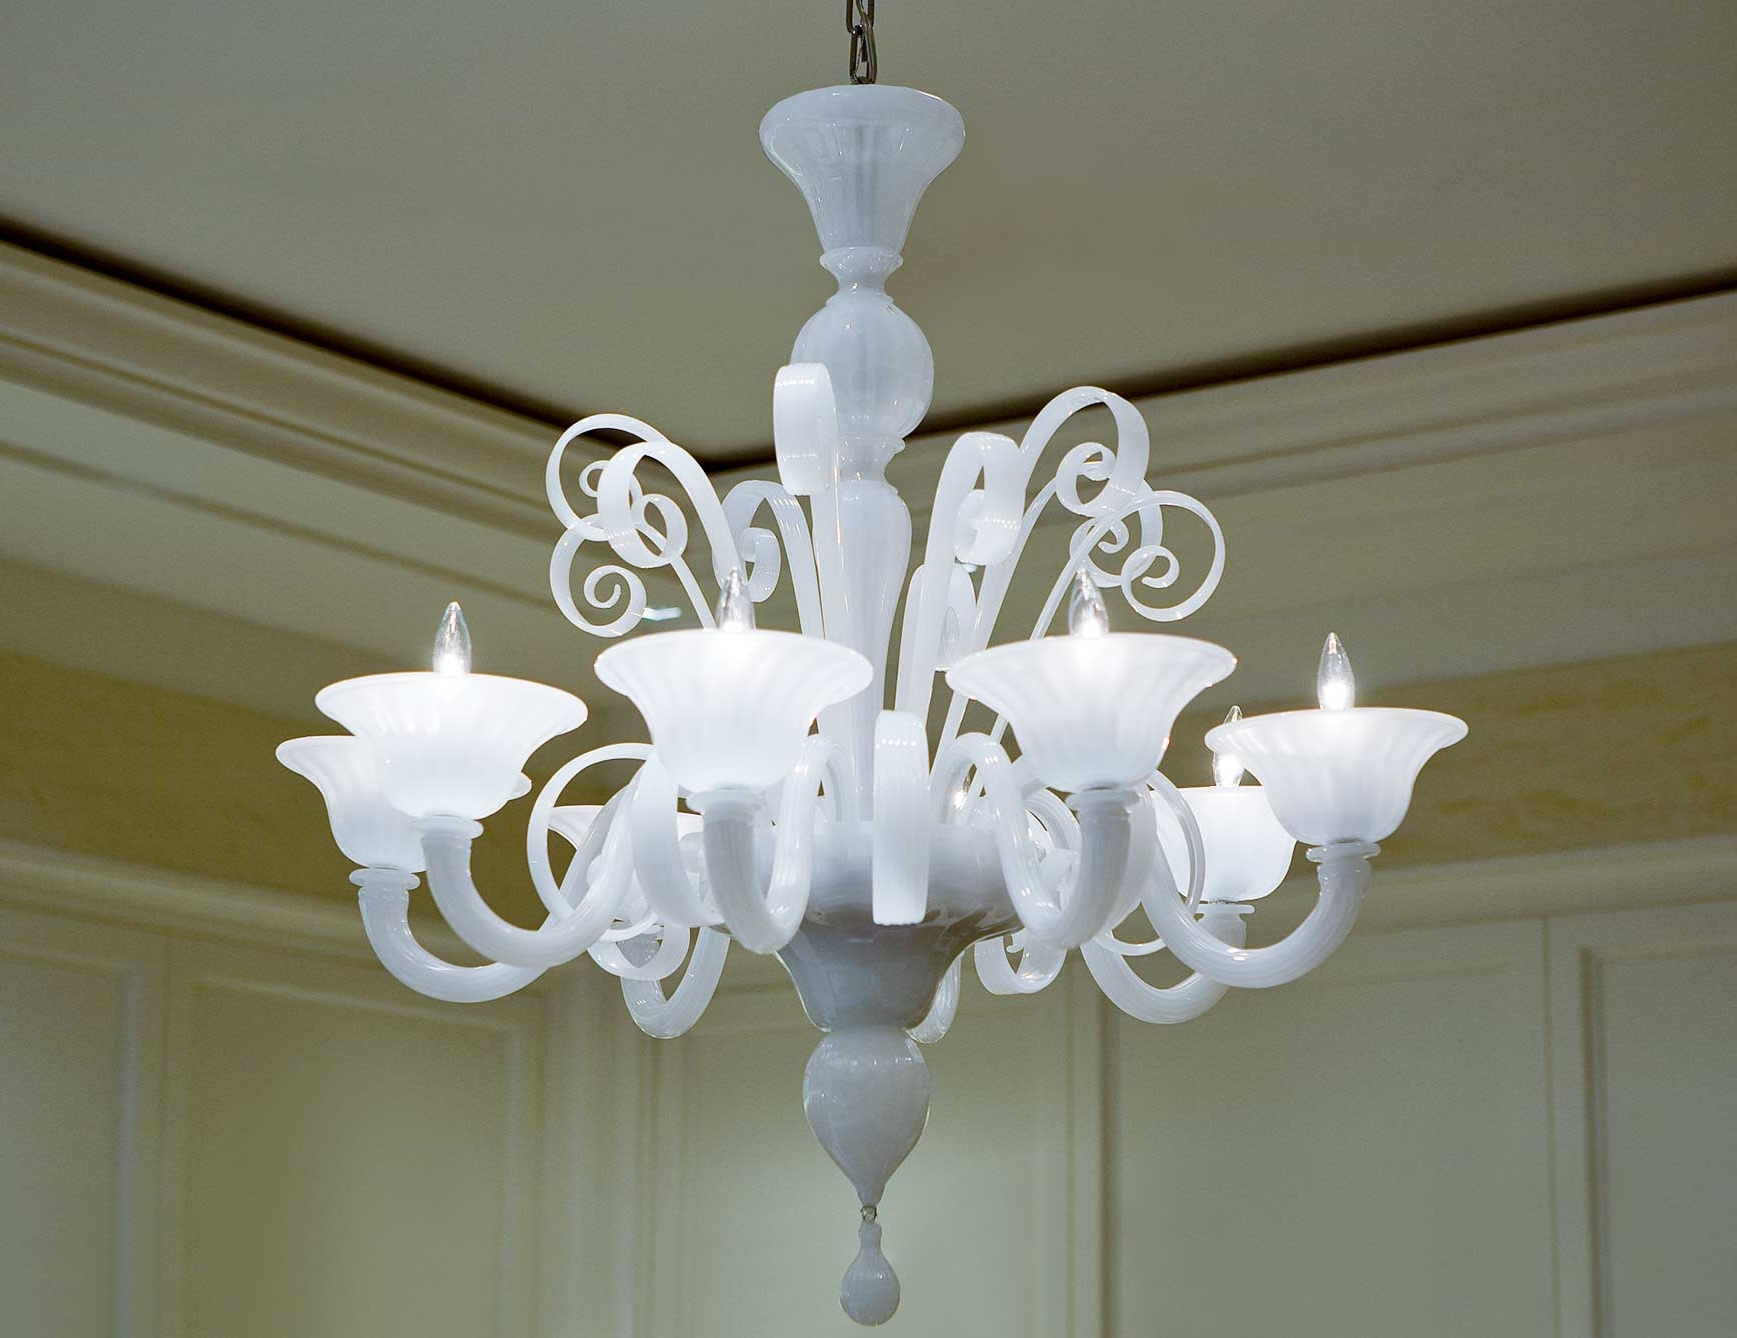 Nella Vetrina White Murano 8 Murano Chandelier In White Glass with regard to Popular Murano Chandelier